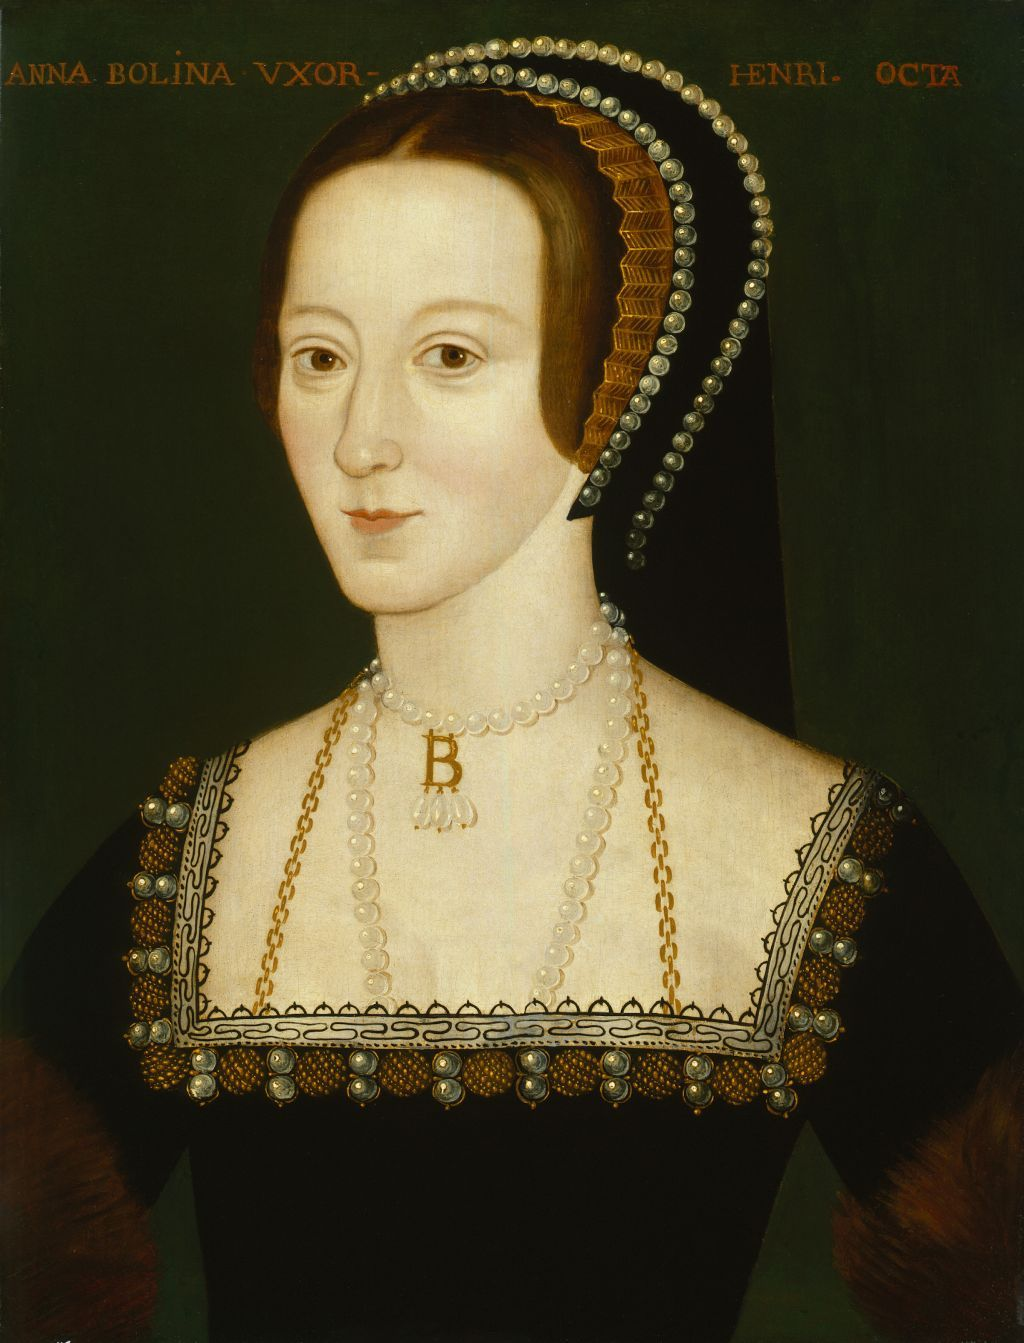 anne boleyn short essay 19 results  research essay sample on anne boleyn custom essay writing  these are the  questions i hope to answer in this short paper on the reformation of.